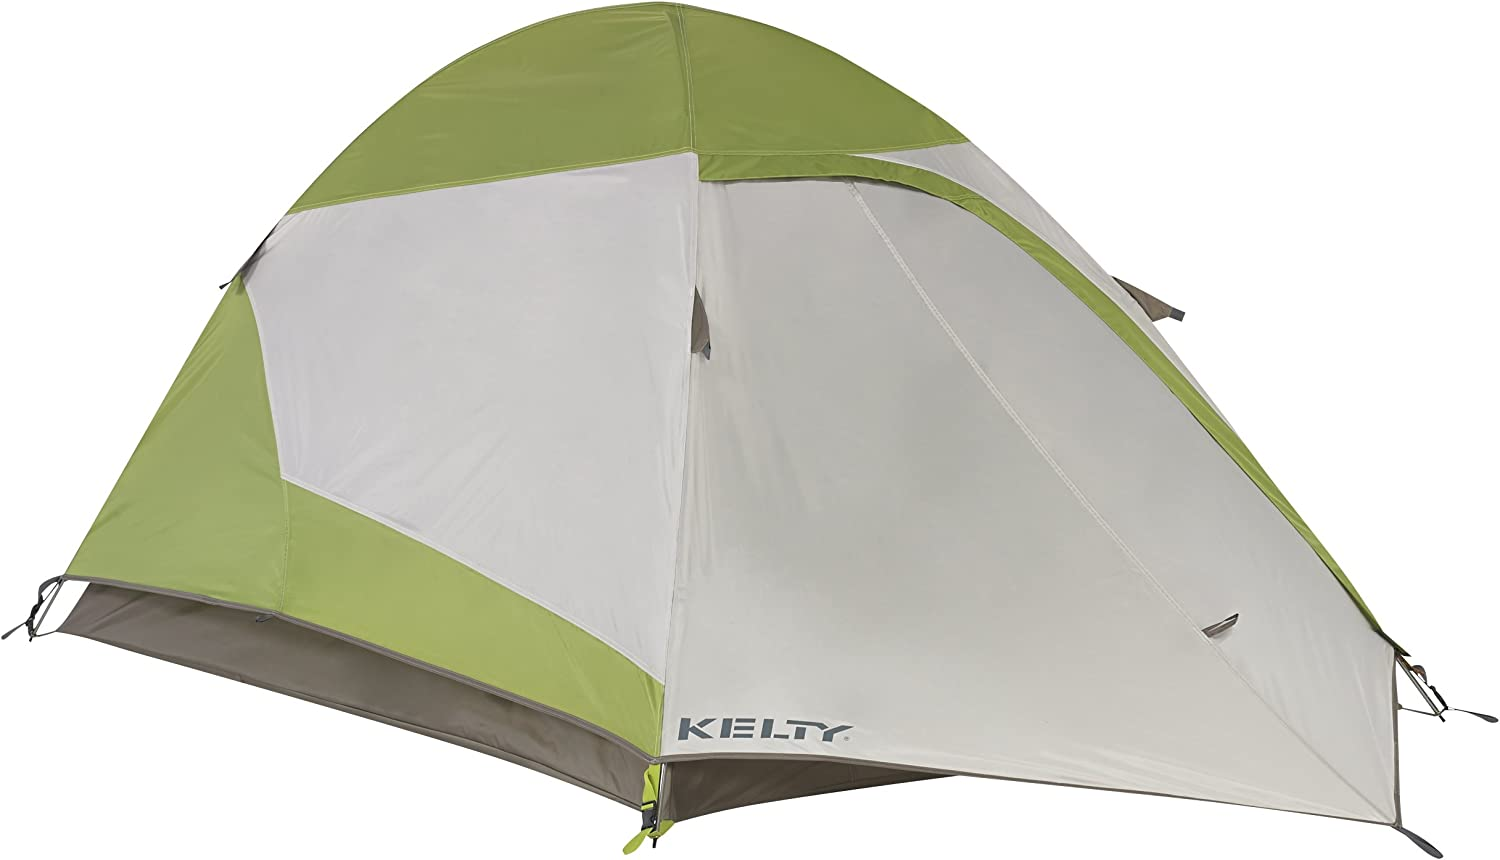 Kelty Grand Mesa Tent 2 to 4 Person Camping and Backpacking Tents, Green